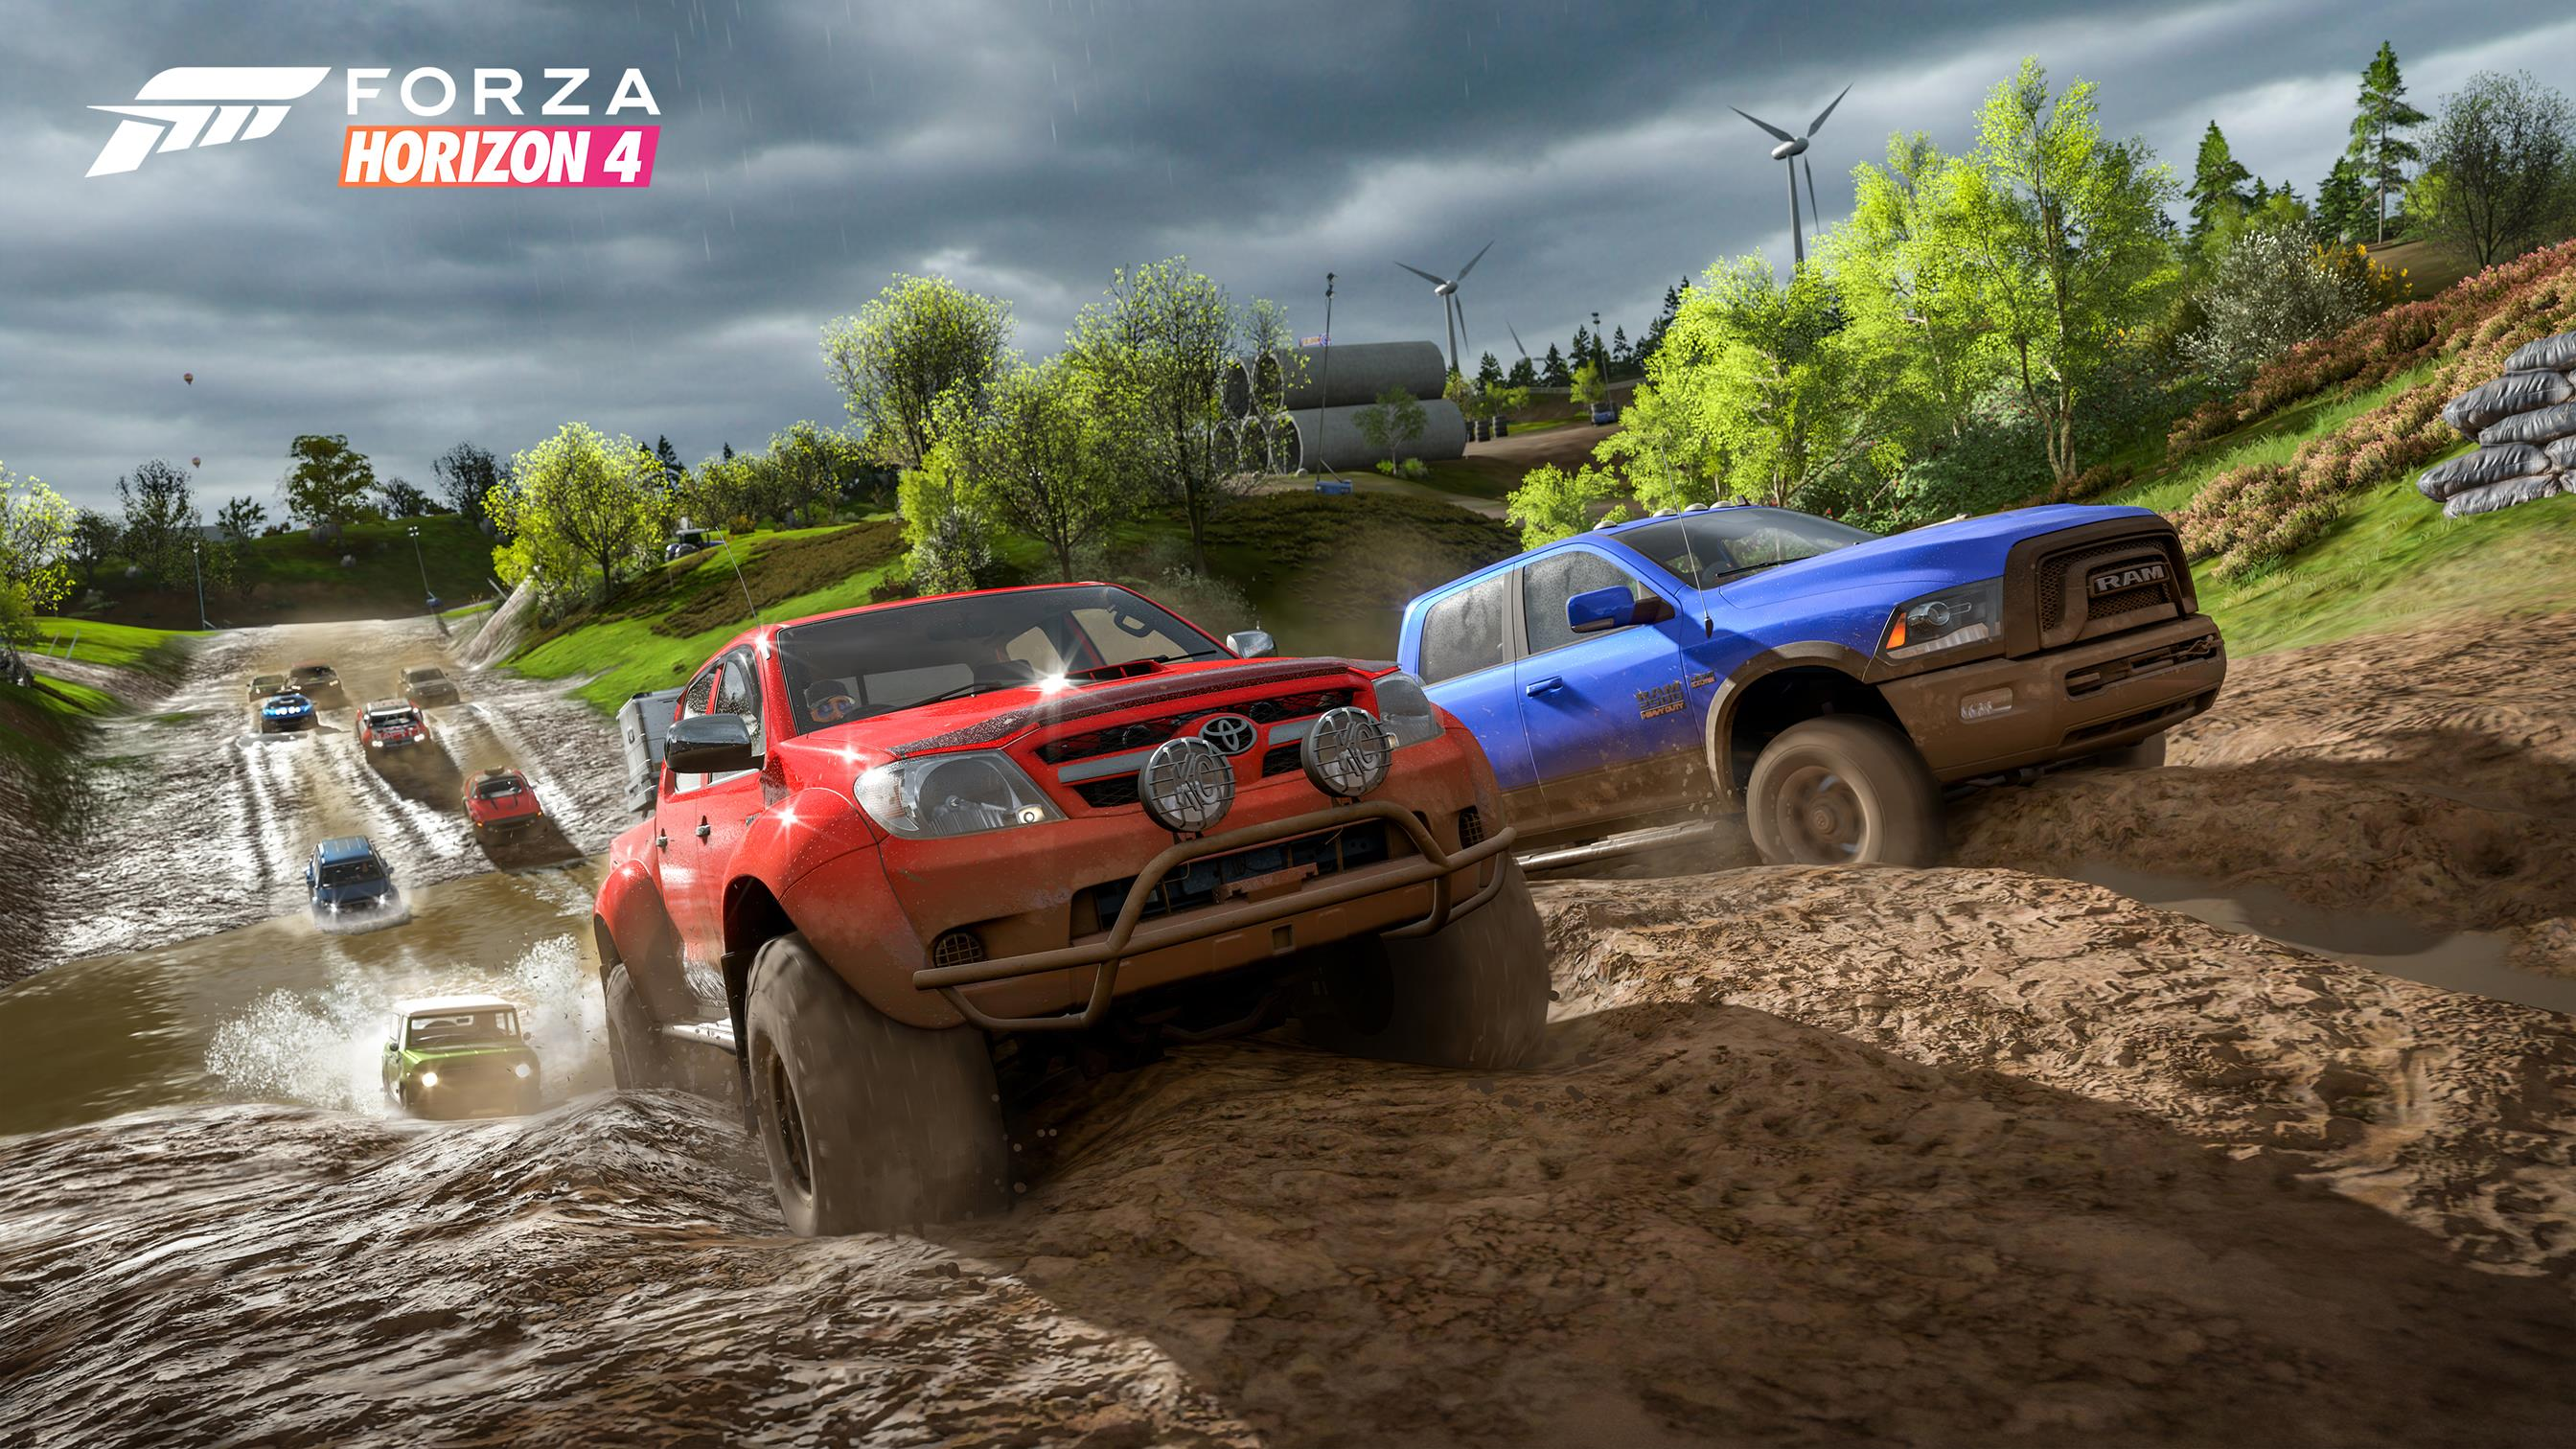 Forza Horizon 4 demo is dropping today